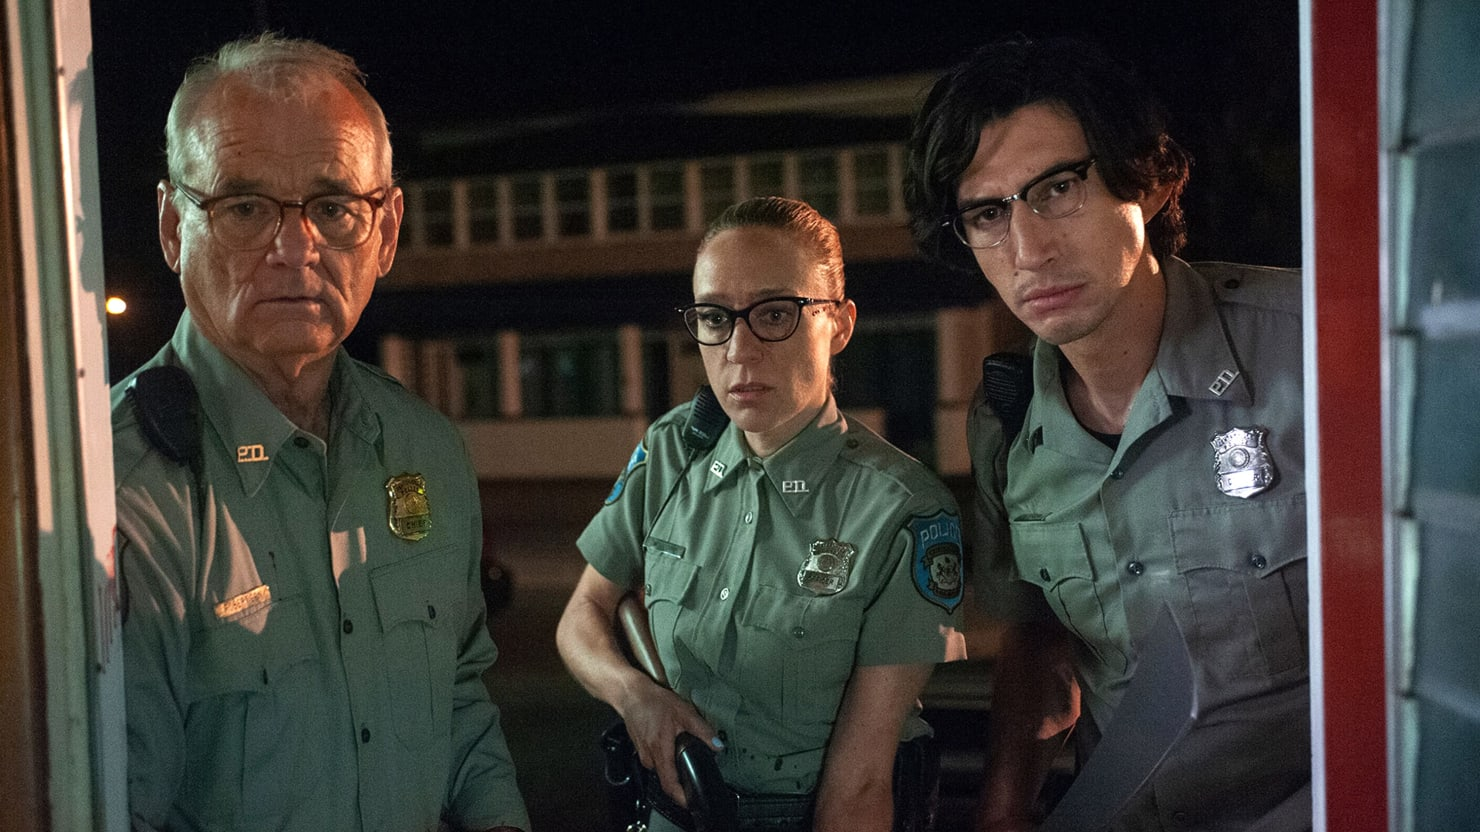 Bill Murray and Adam Driver Fight Zombies in MAGA-Infested Small-Town America – The Daily Beast